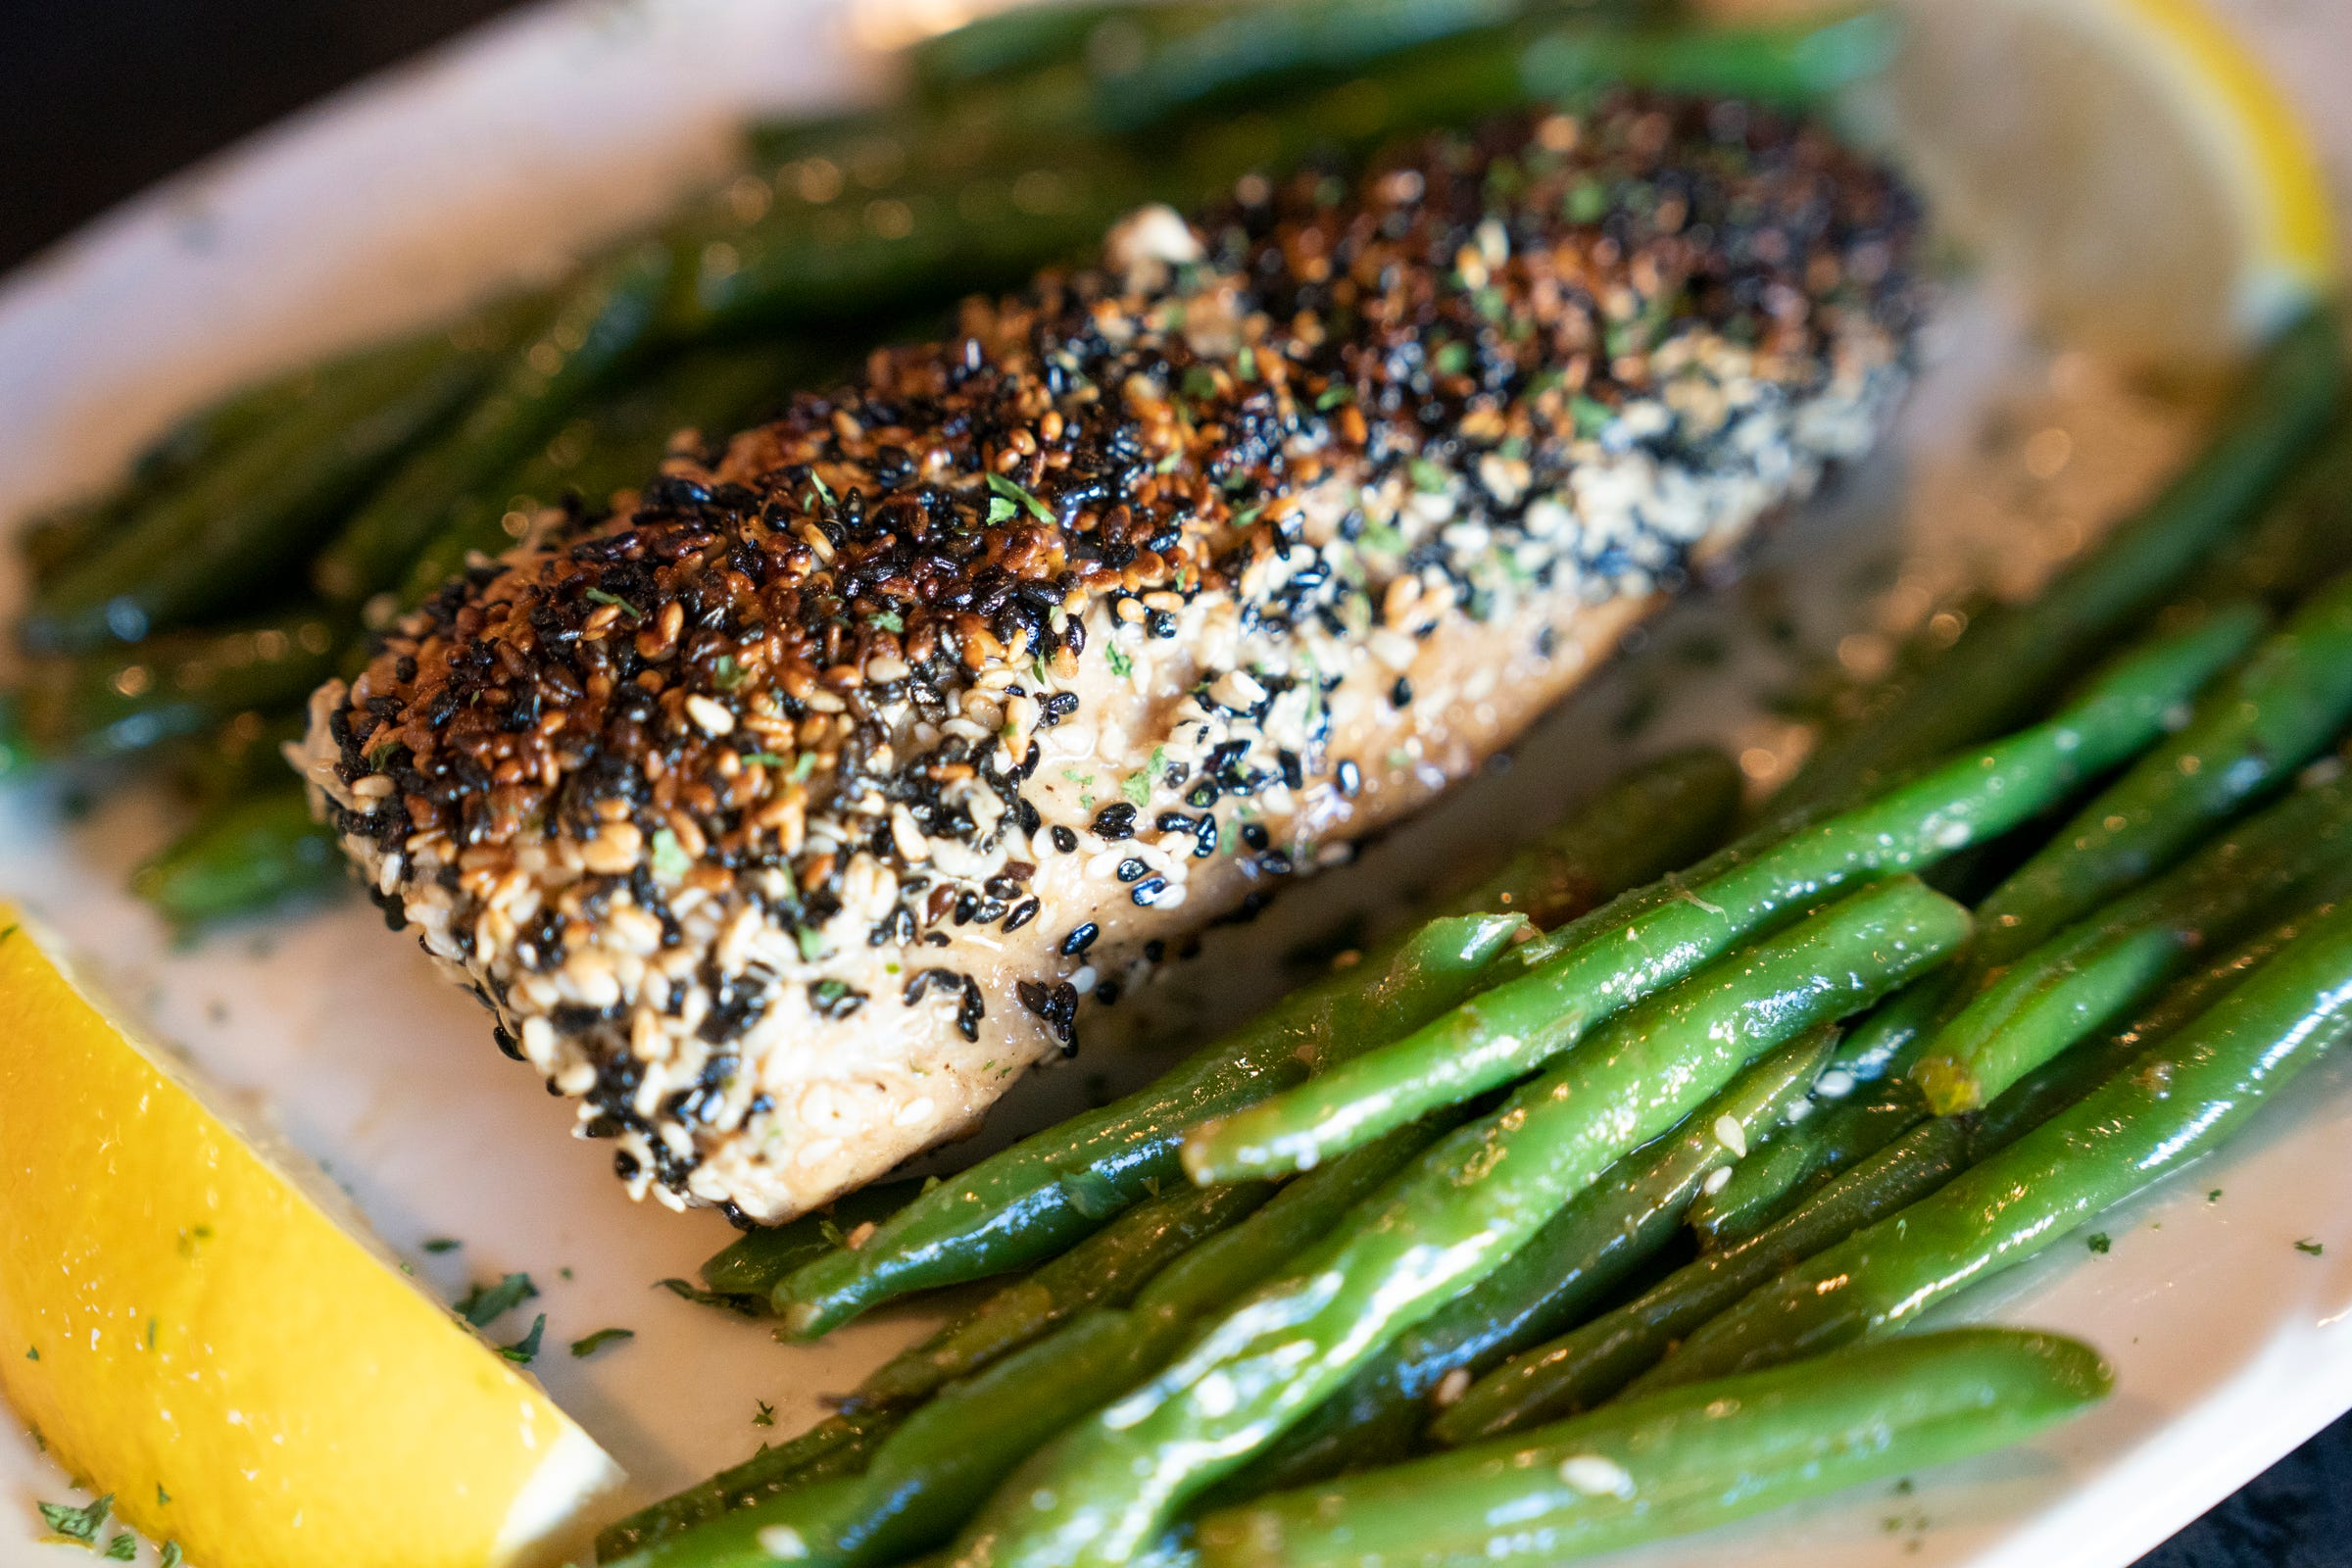 Matthew Blancke, 37, is a third-generation owner of Sindbad's Restaurant and Marina in Detroit seared this Bahamian Wahoo fish with white wine and rolled it in black and white sesame seeds served with blanched green beans on Sept. 16, 2021. The Wahoo will be a new addition to the menu.